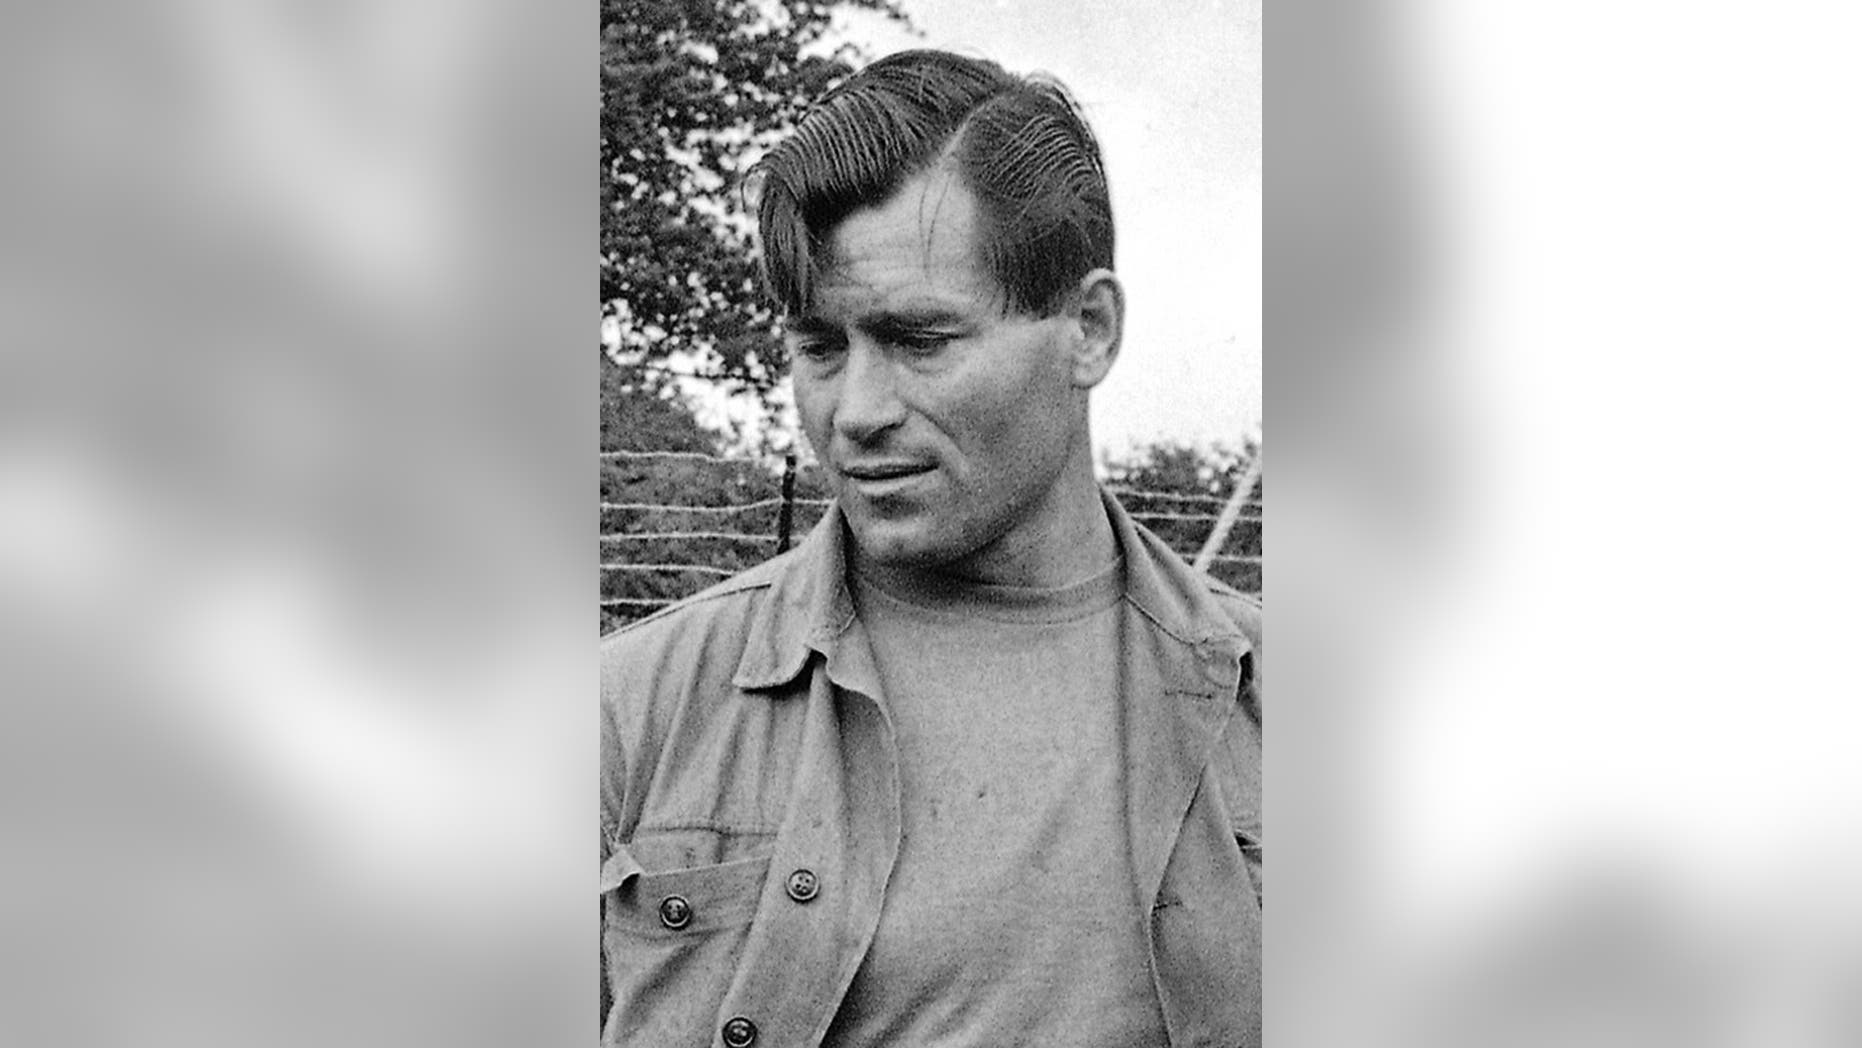 """FILE - In this Aug. 5, 1966 file photo, actor Clint Walker appears on the set of """"The Dirty Dozen"""" in Morkyate, Bedfordshire, England. Walker, who played the title character in the early TV western """"Cheyenne,"""" died Monday, May 21, 2018, of congestive heart failure at a hospital in Grass Valley, Calif. He was 91. (AP Photo, File)"""